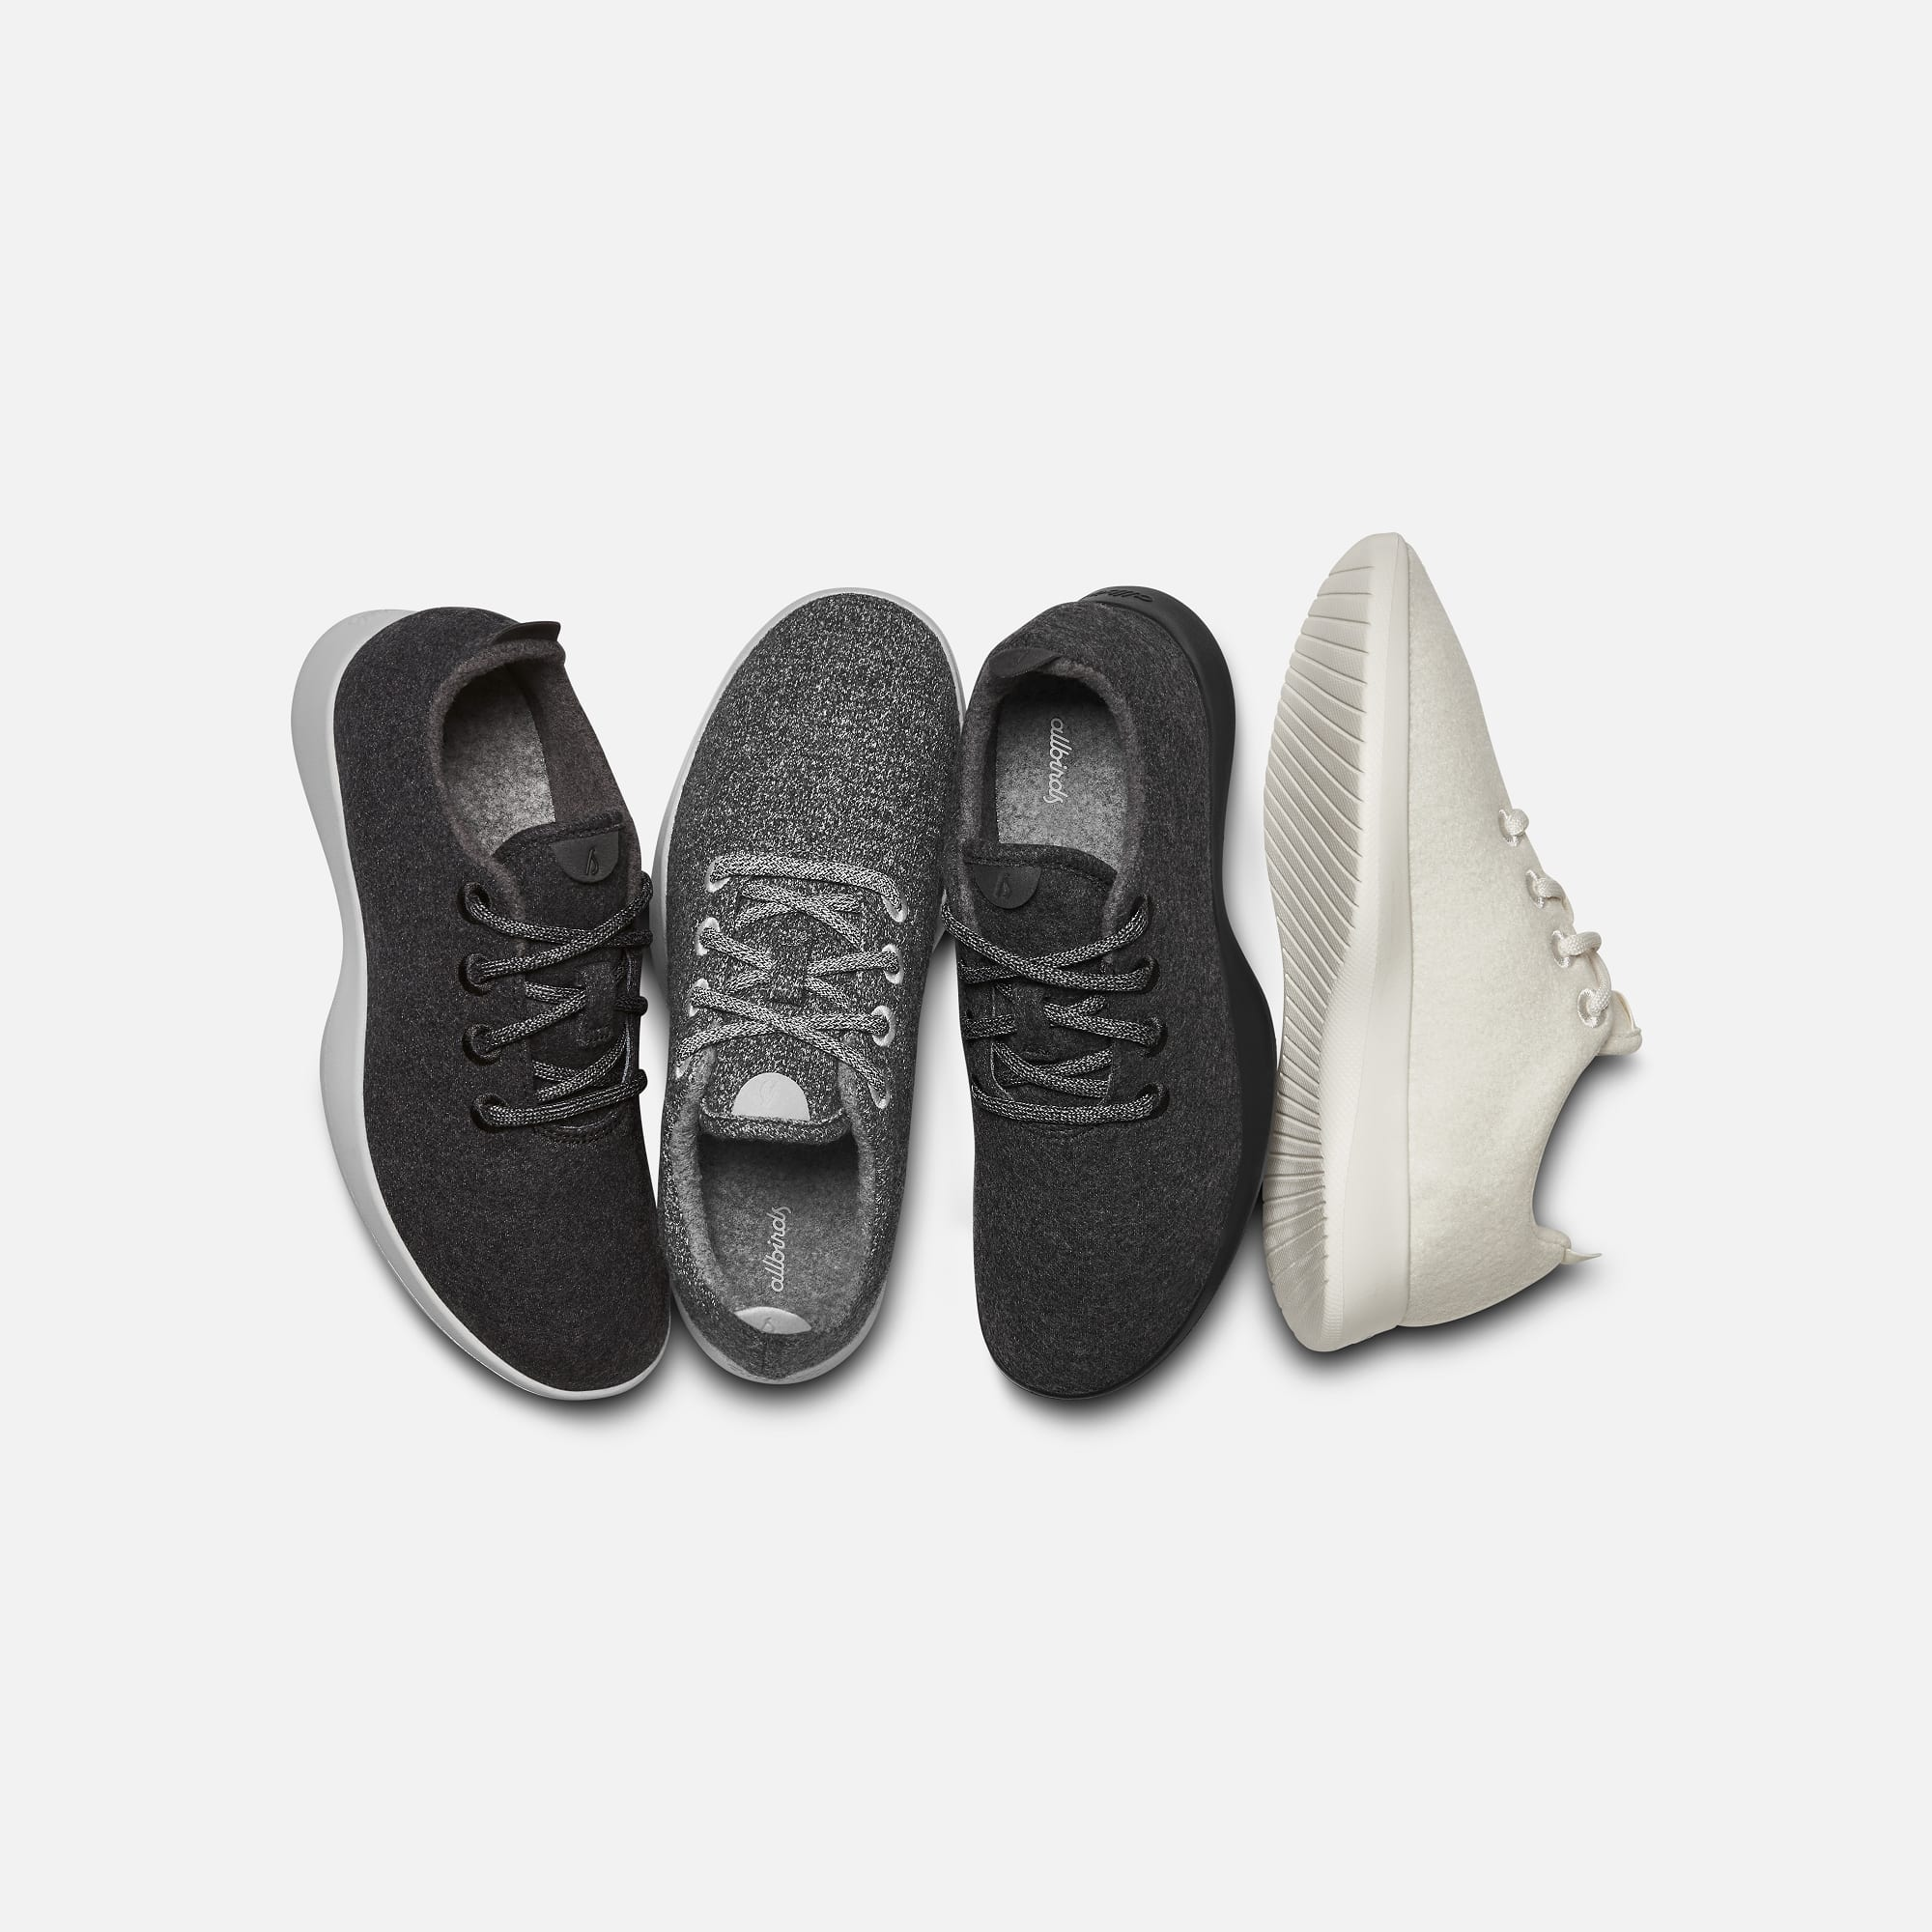 29507a21ec4 Allbirds went from Silicon Valley staple to  1.4 billion shoe startup